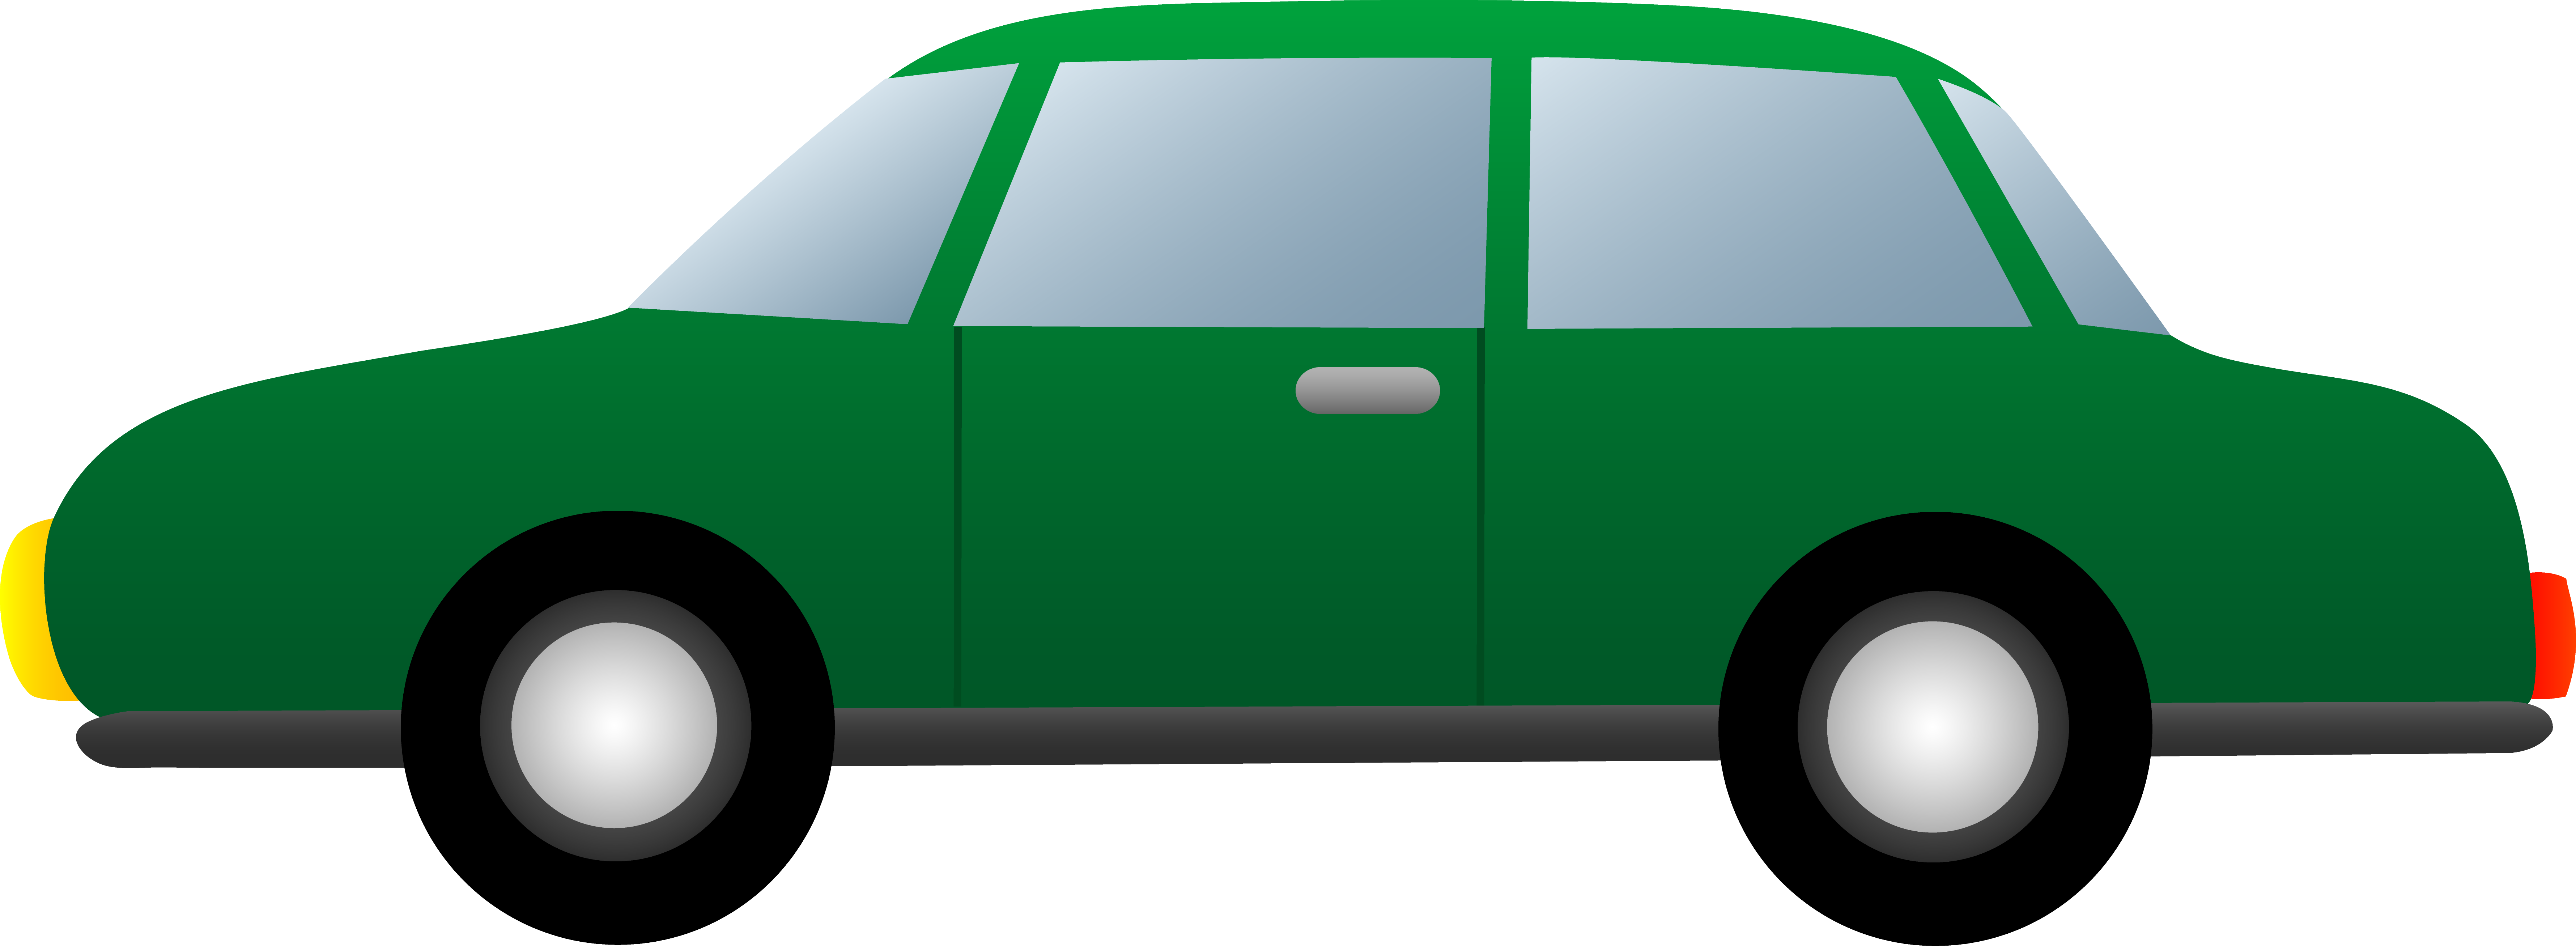 Free Car Png Hd, Download Free Clip Art, Free Clip Art on.